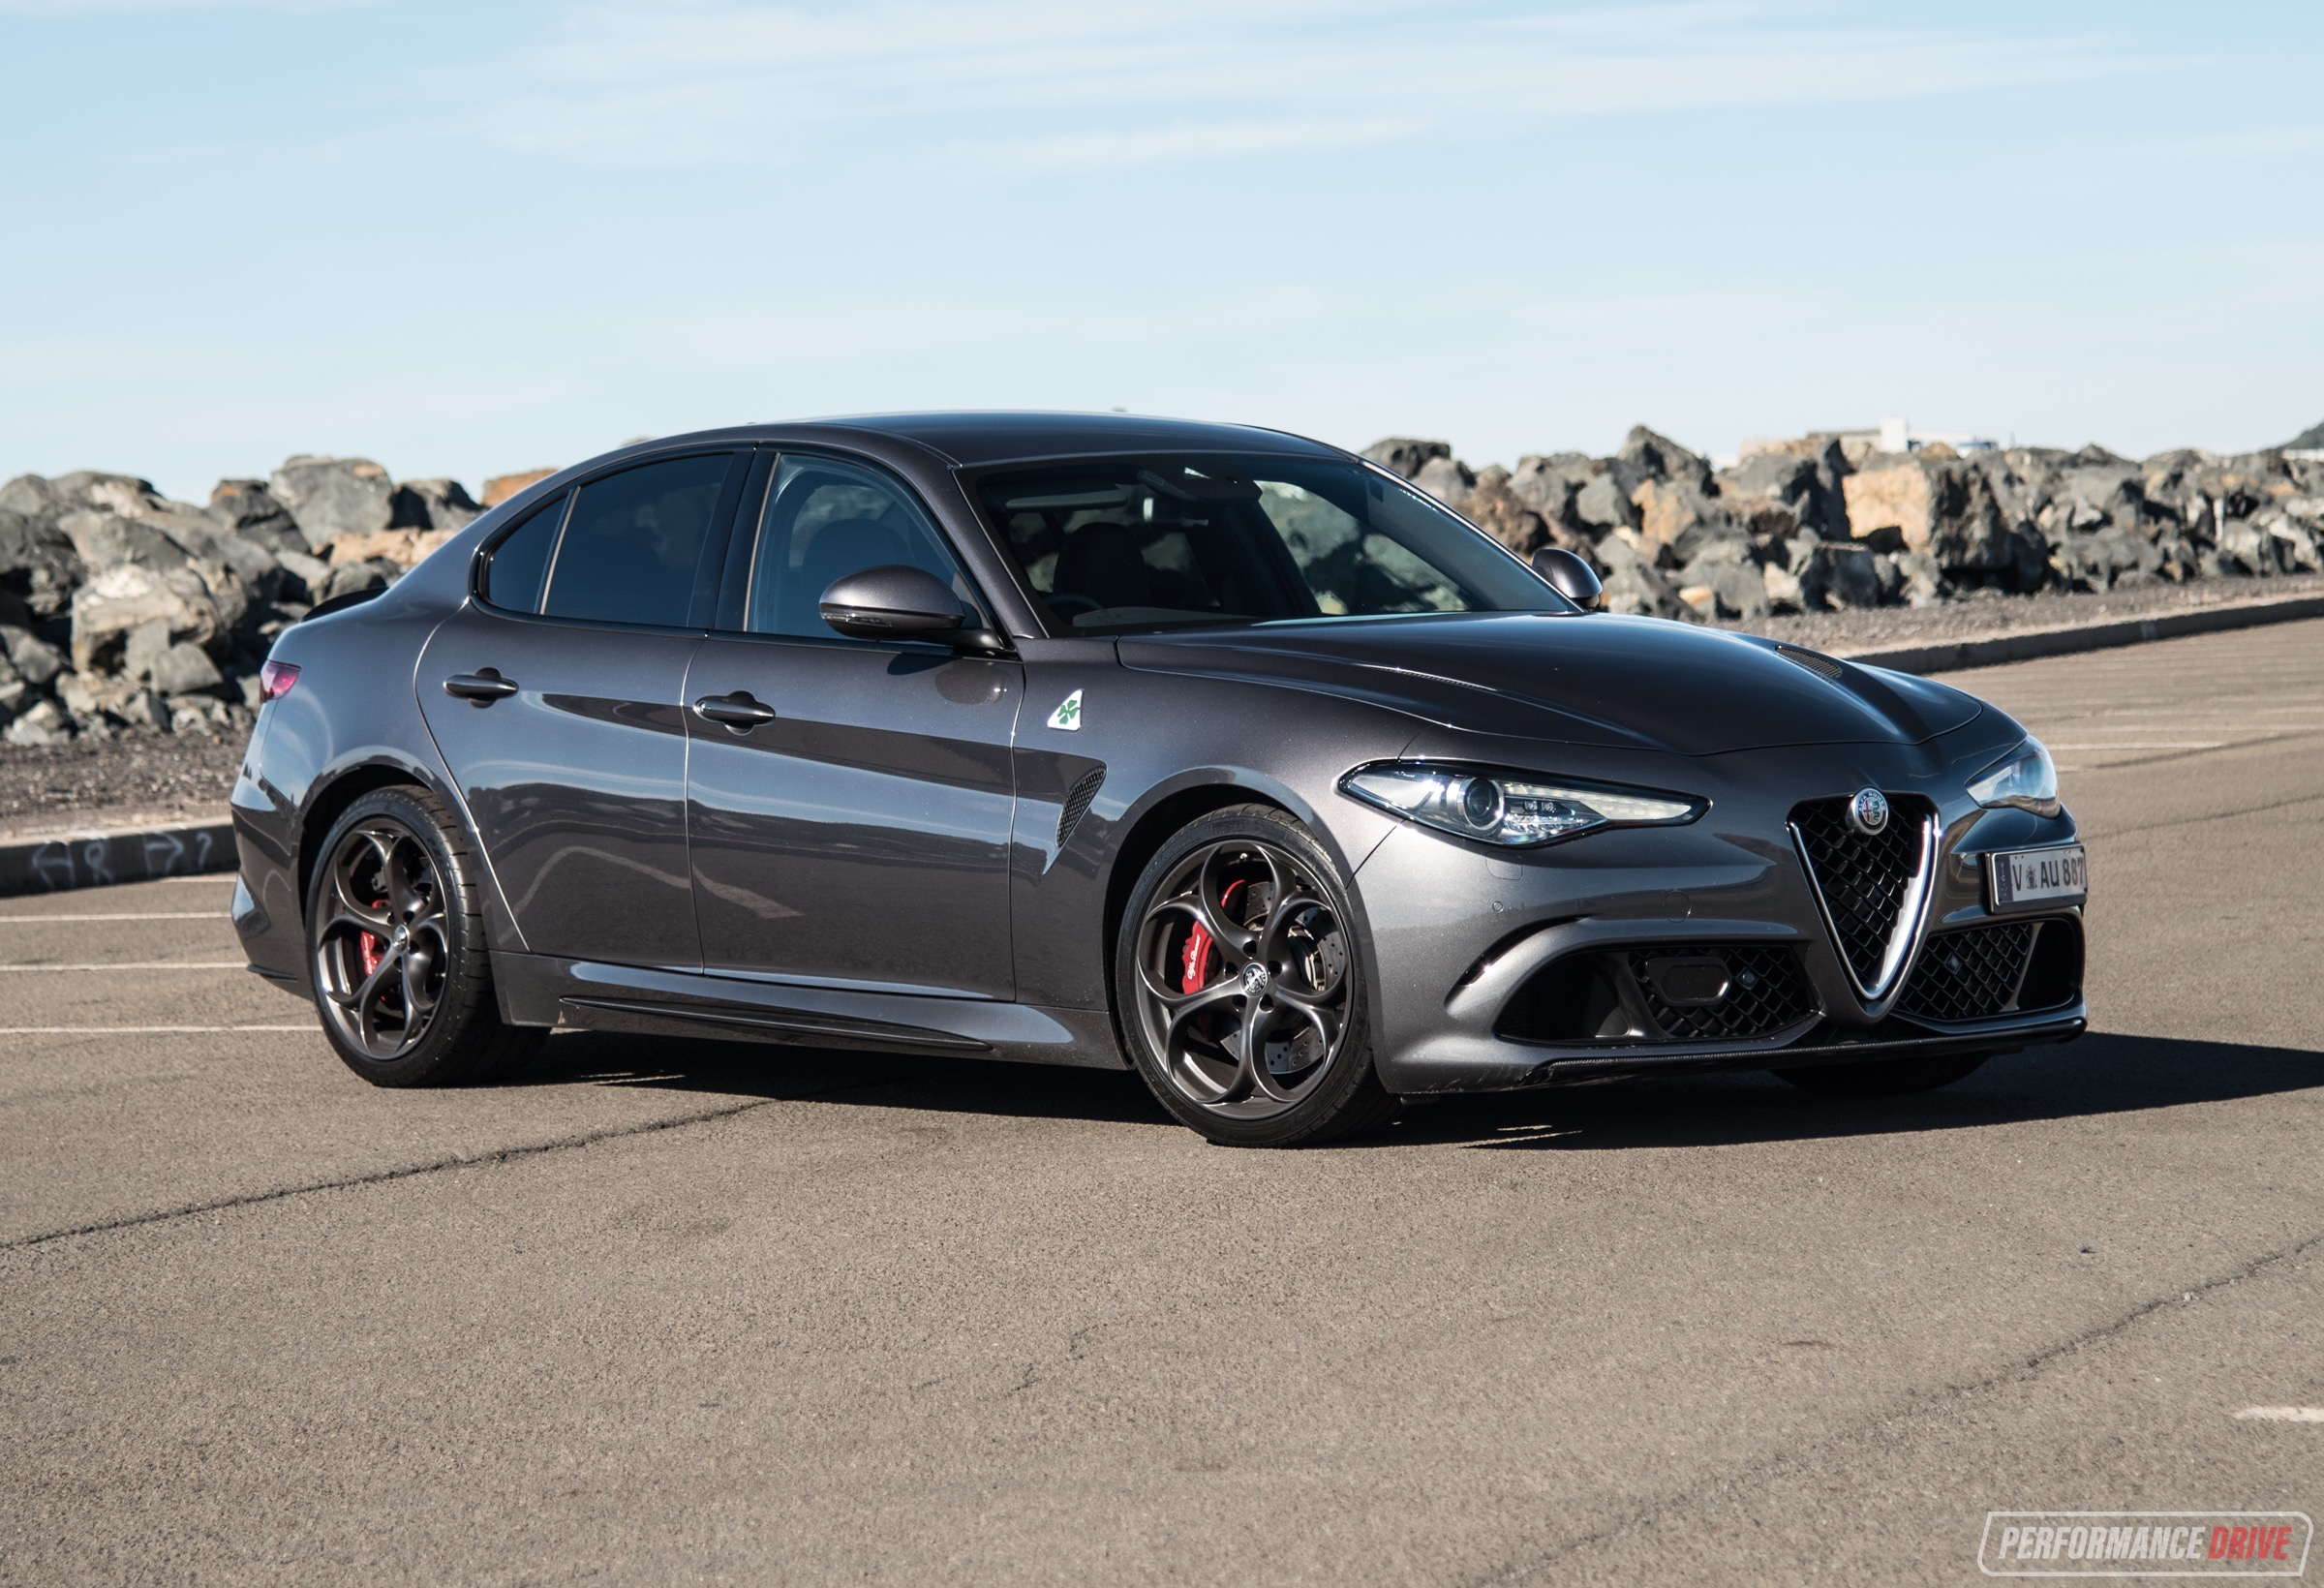 2018 alfa romeo giulia quadrifoglio review video performancedrive. Black Bedroom Furniture Sets. Home Design Ideas